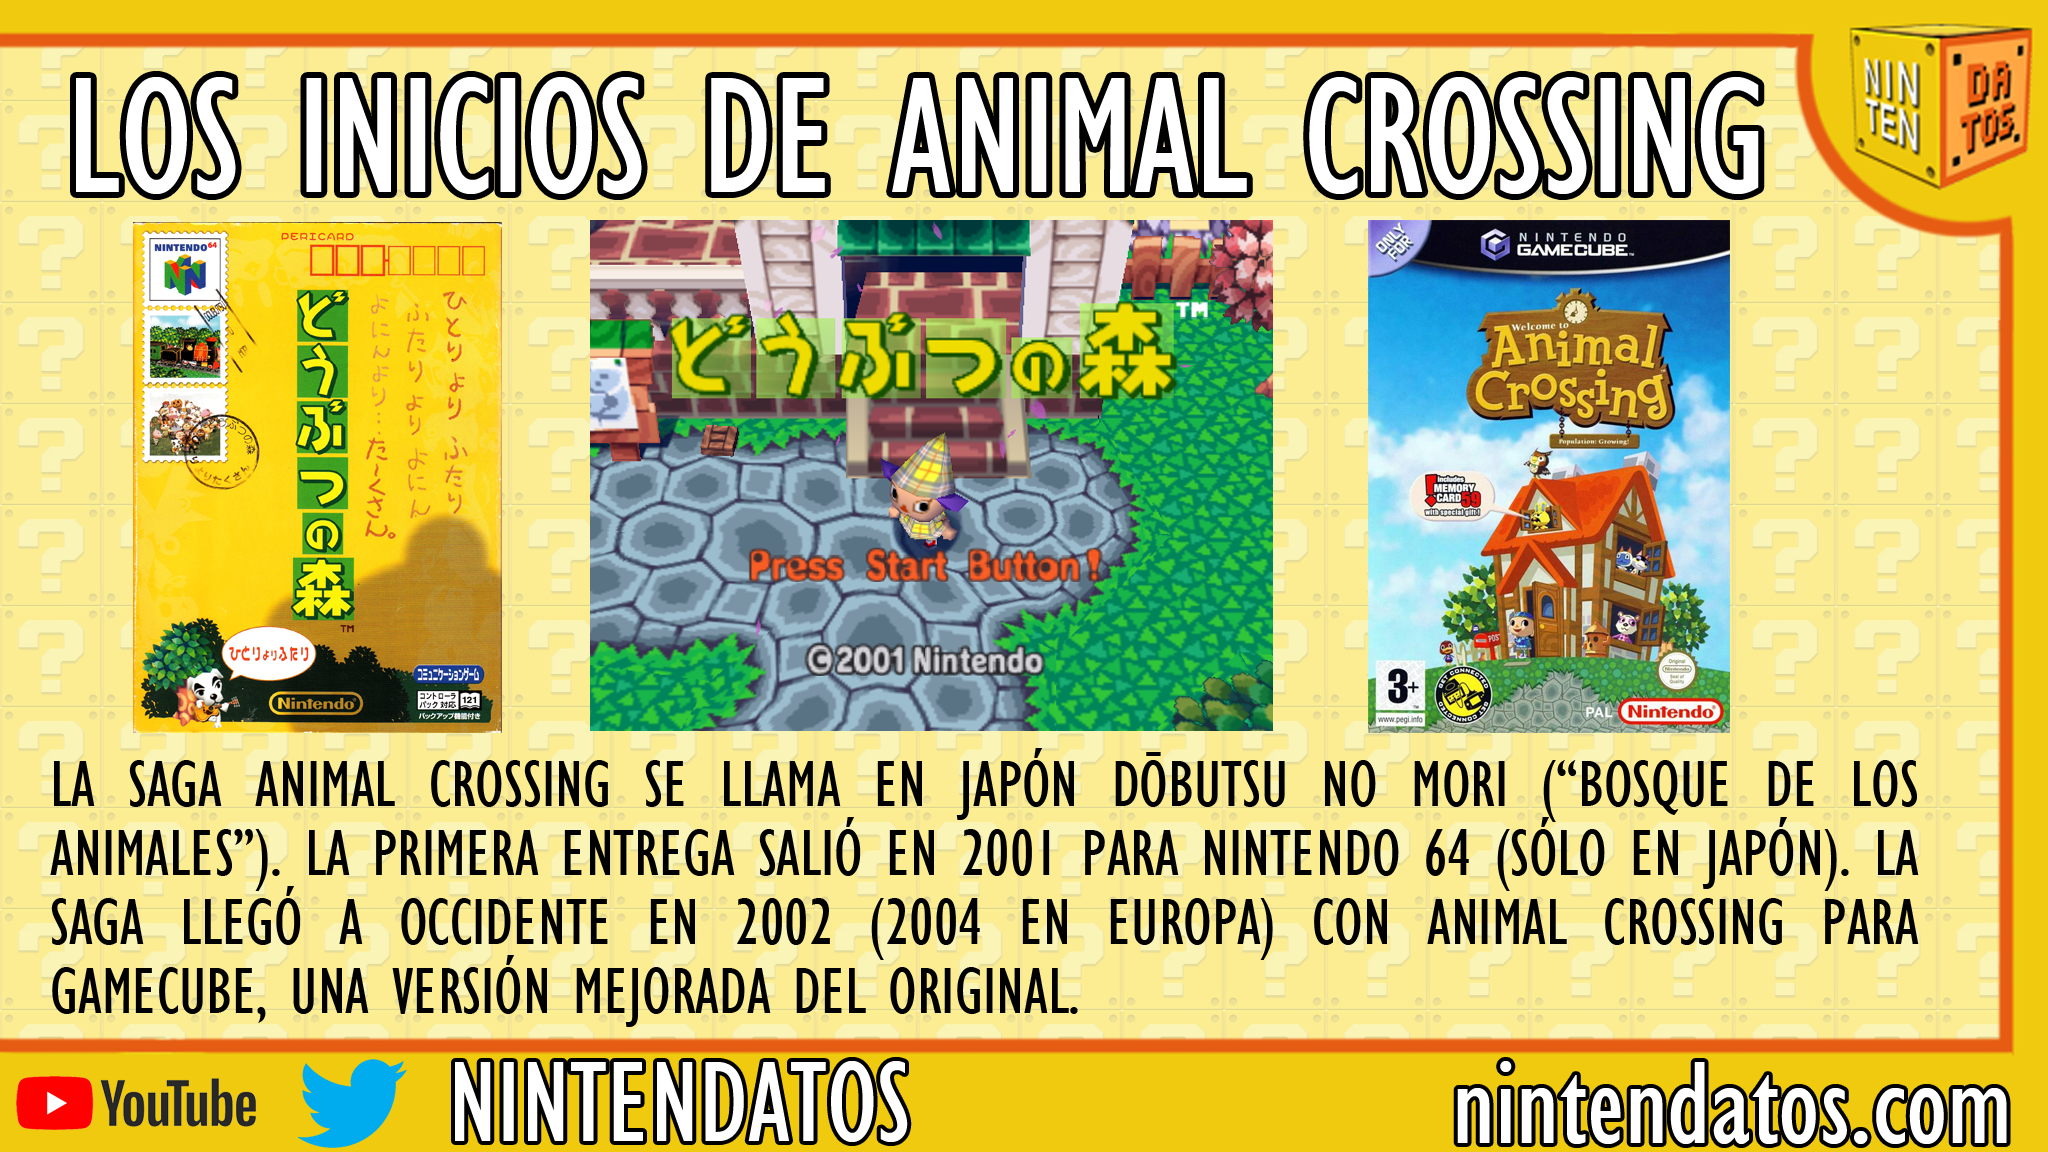 Los inicios de Animal Crossing